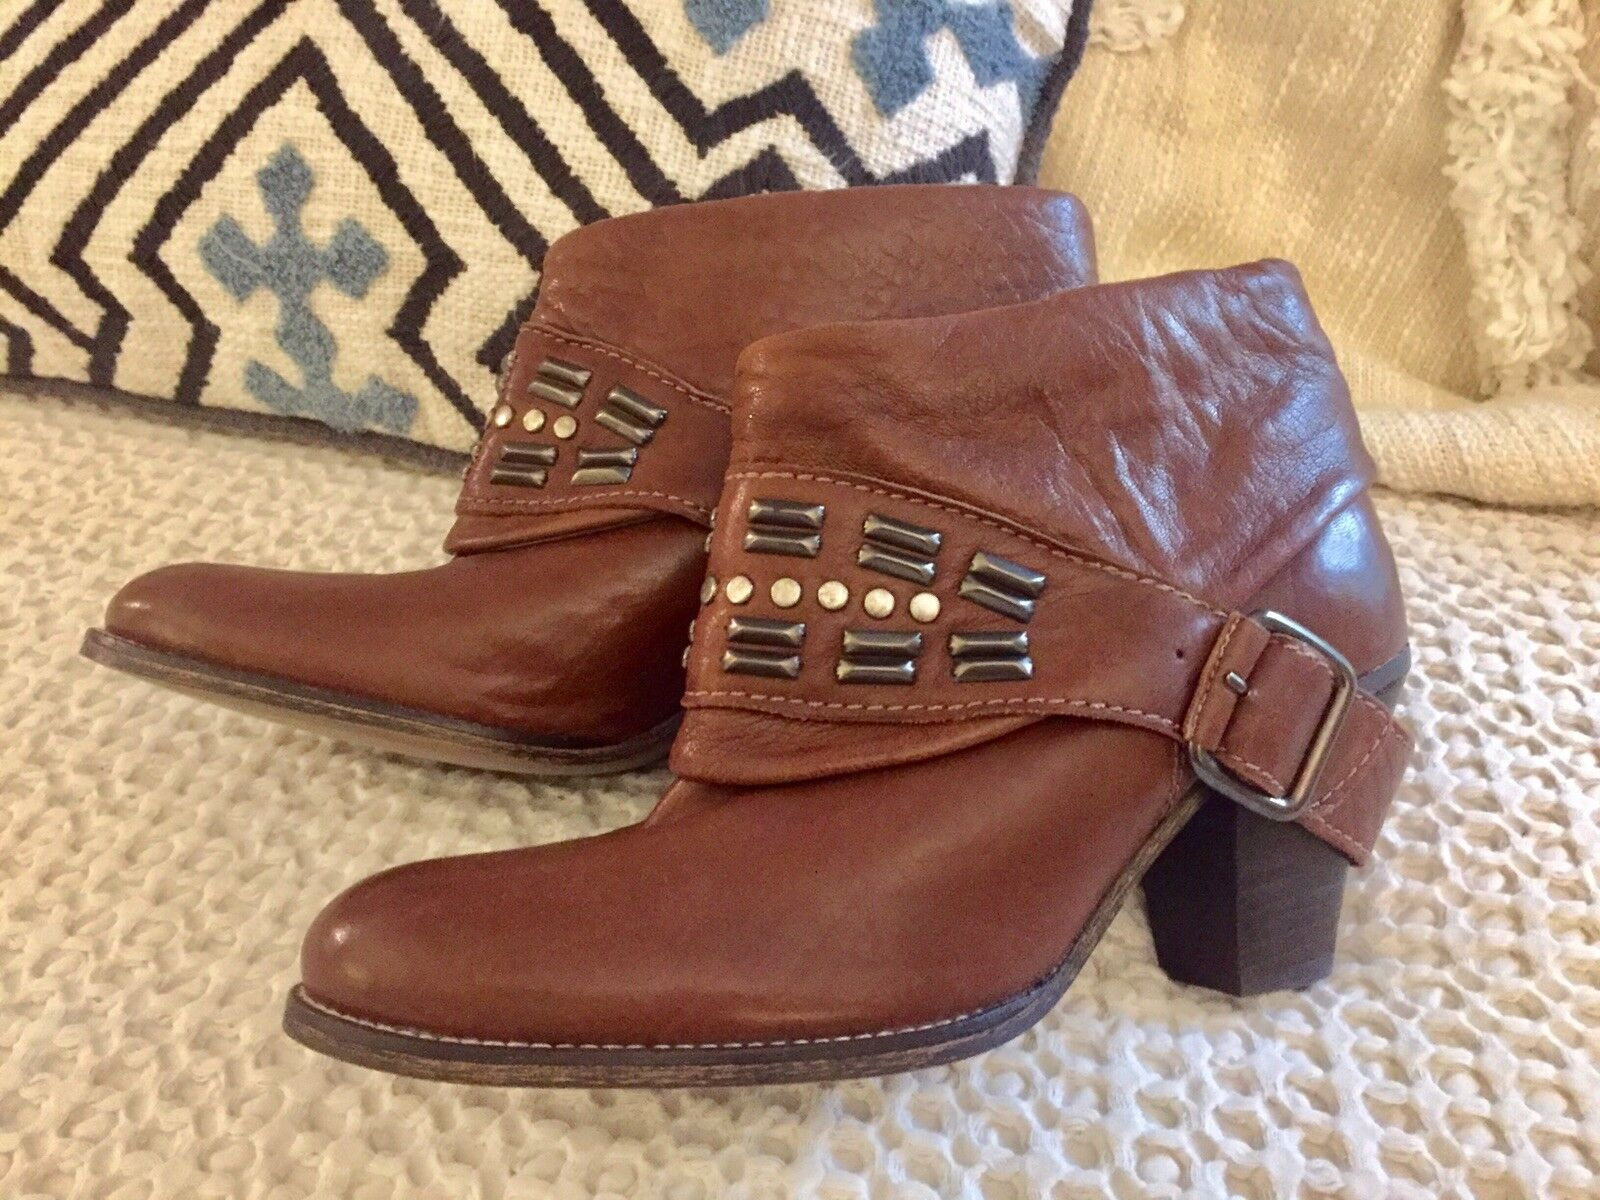 Zara Cognac Soft Supple Buttery Leather Harness Embellished Booties 39